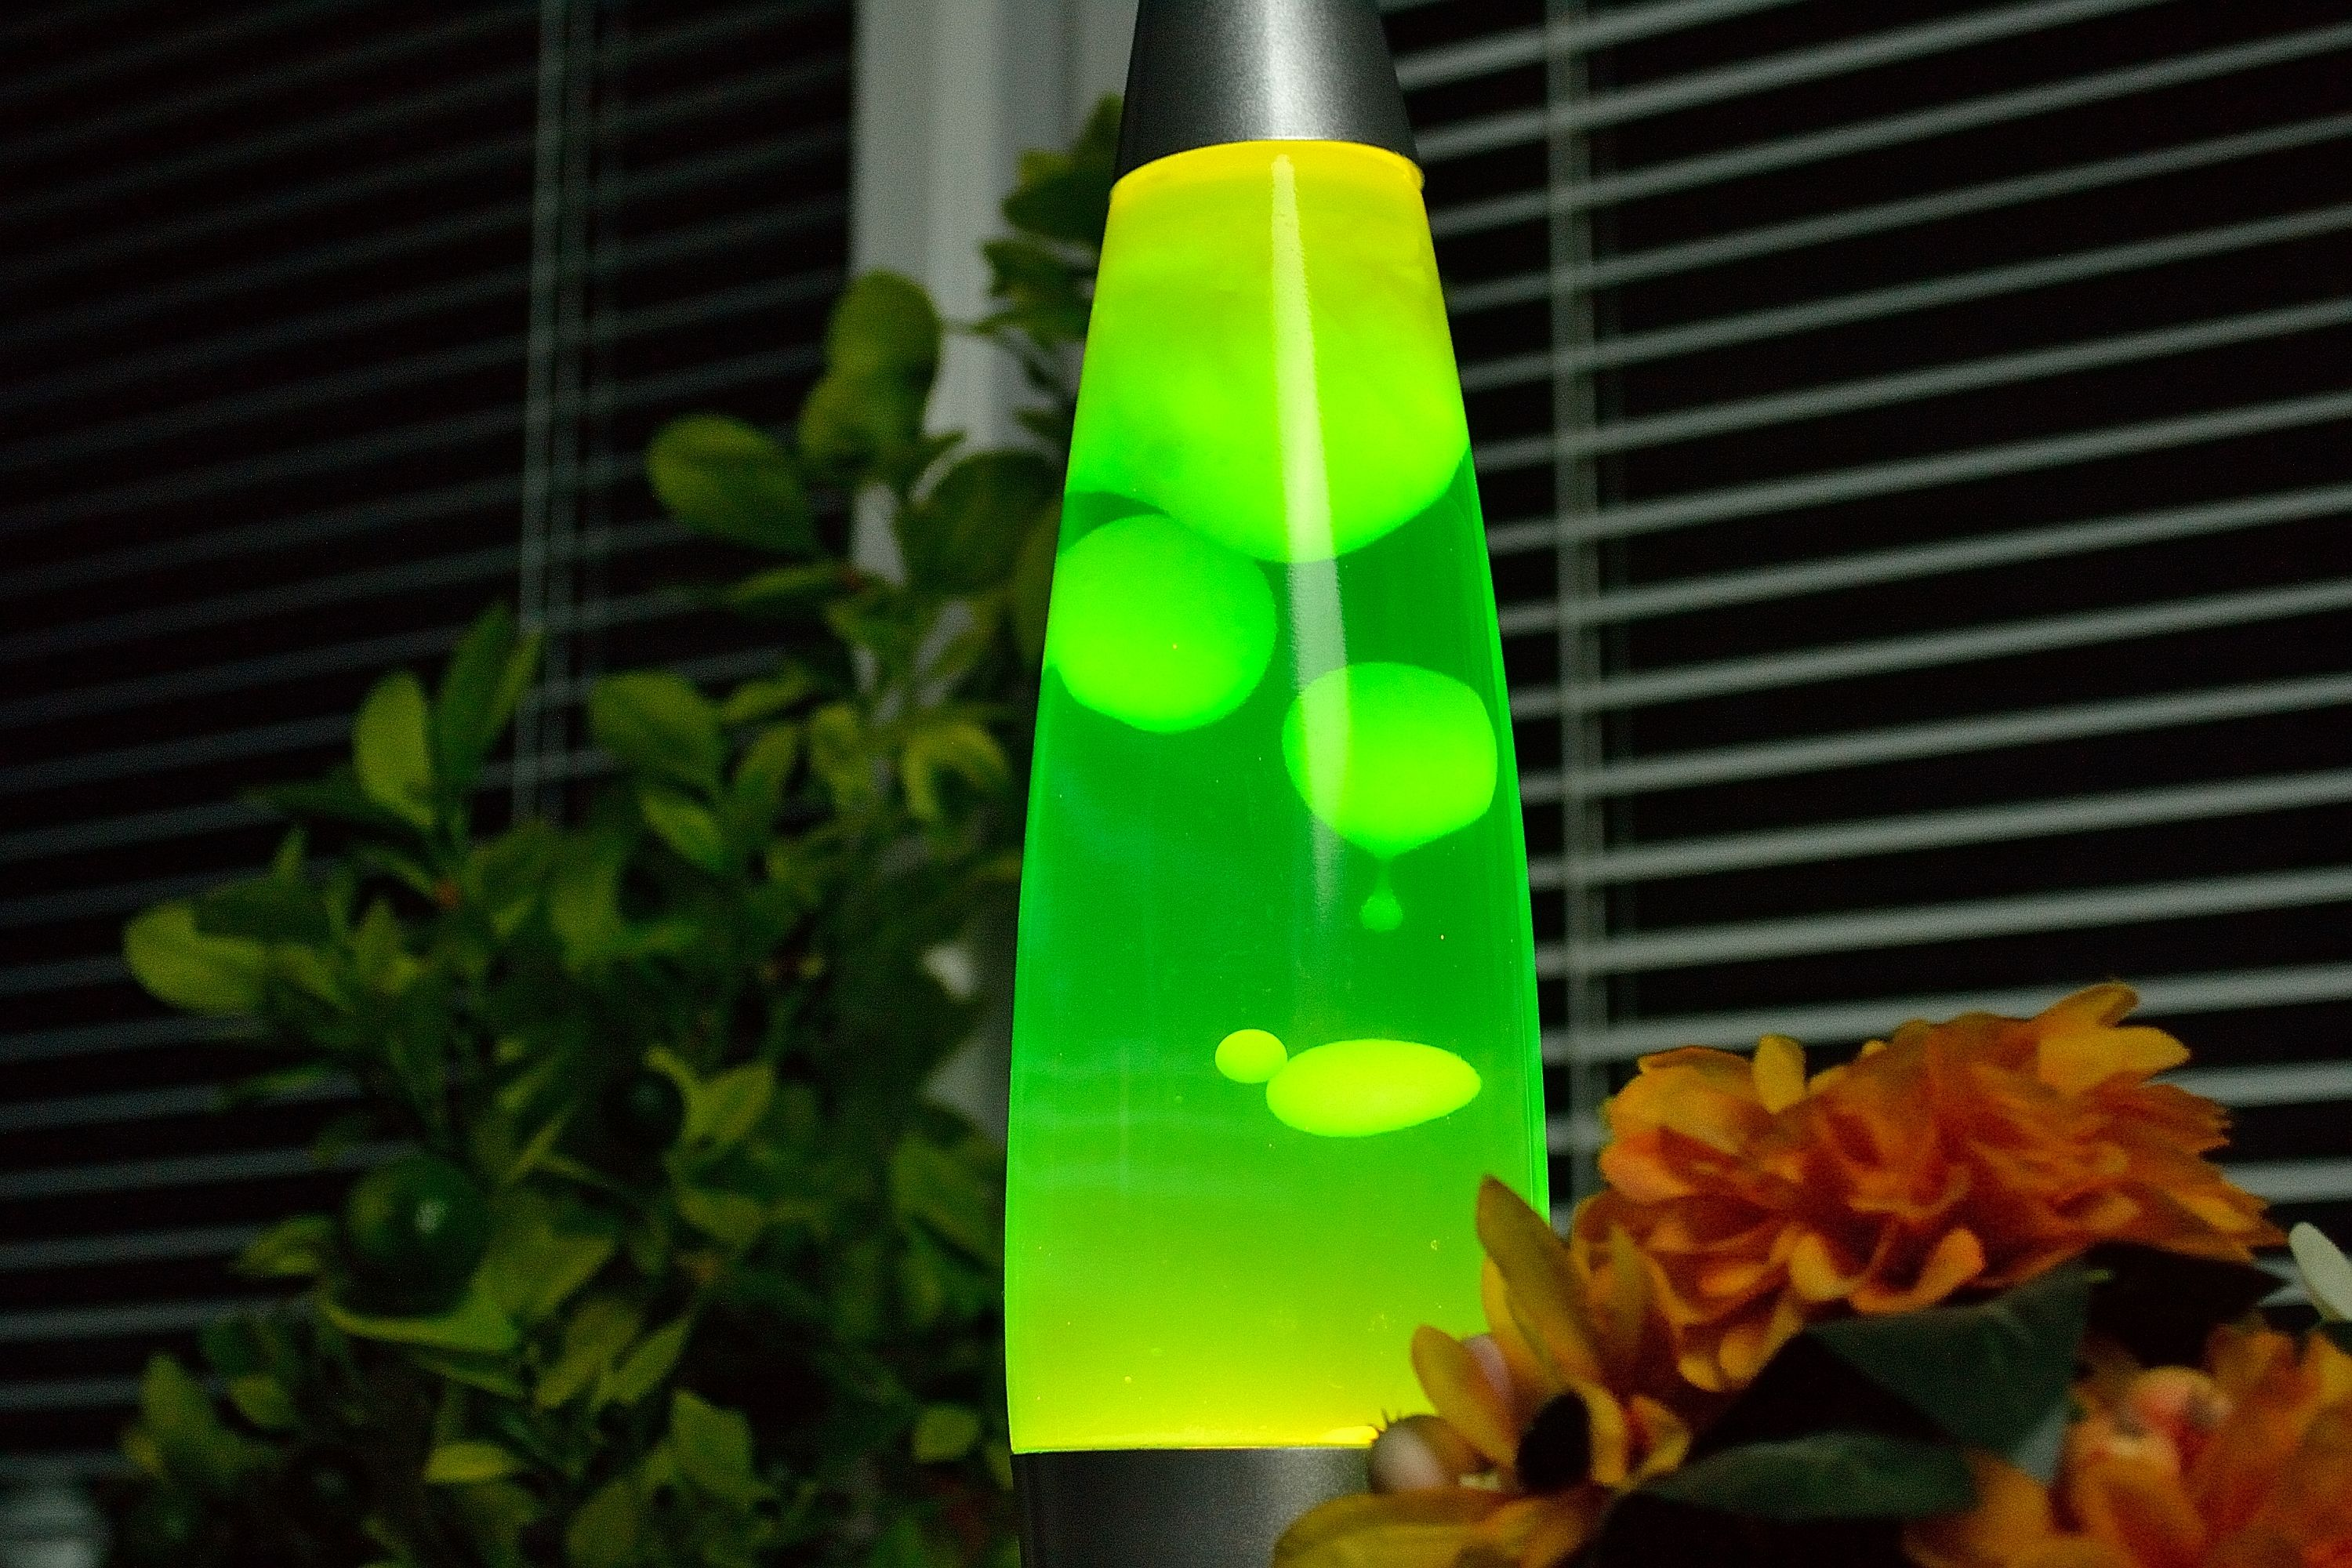 How To Fix A Lava Lamp How Do I Fix My Lava Lamp When The Lava Doesn't Flow  Lava Lamp